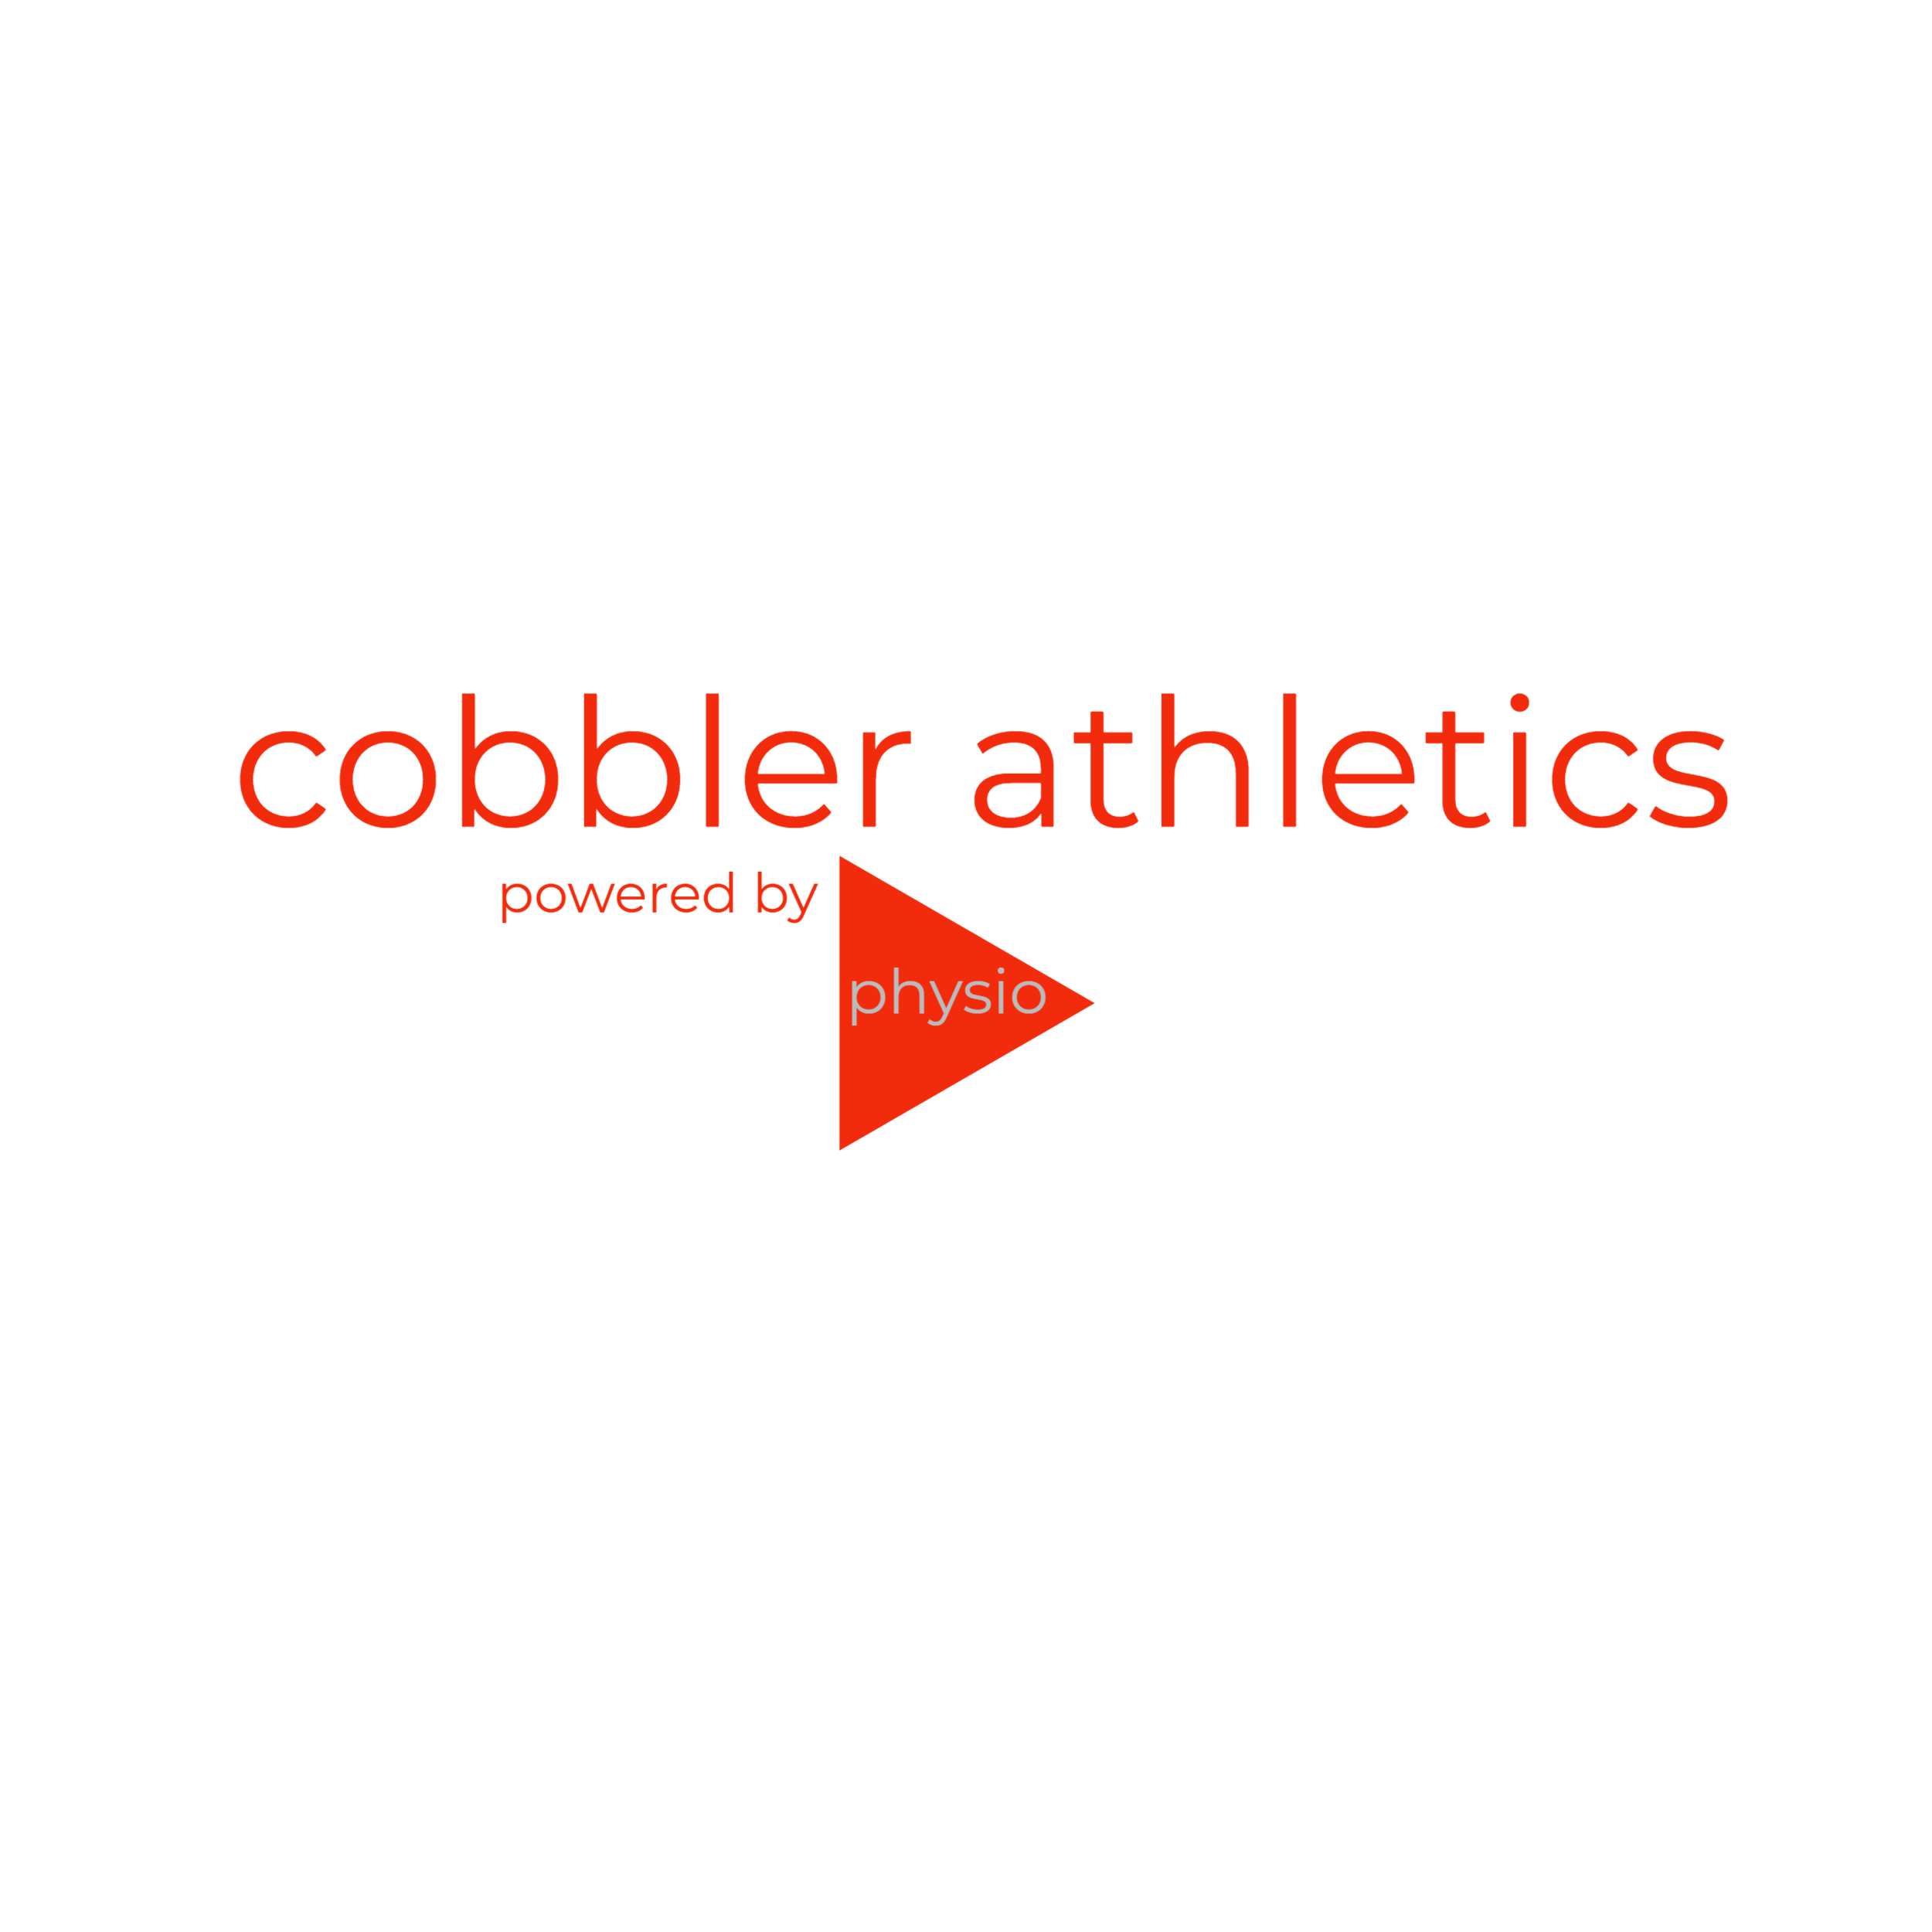 cobbler athletics.png